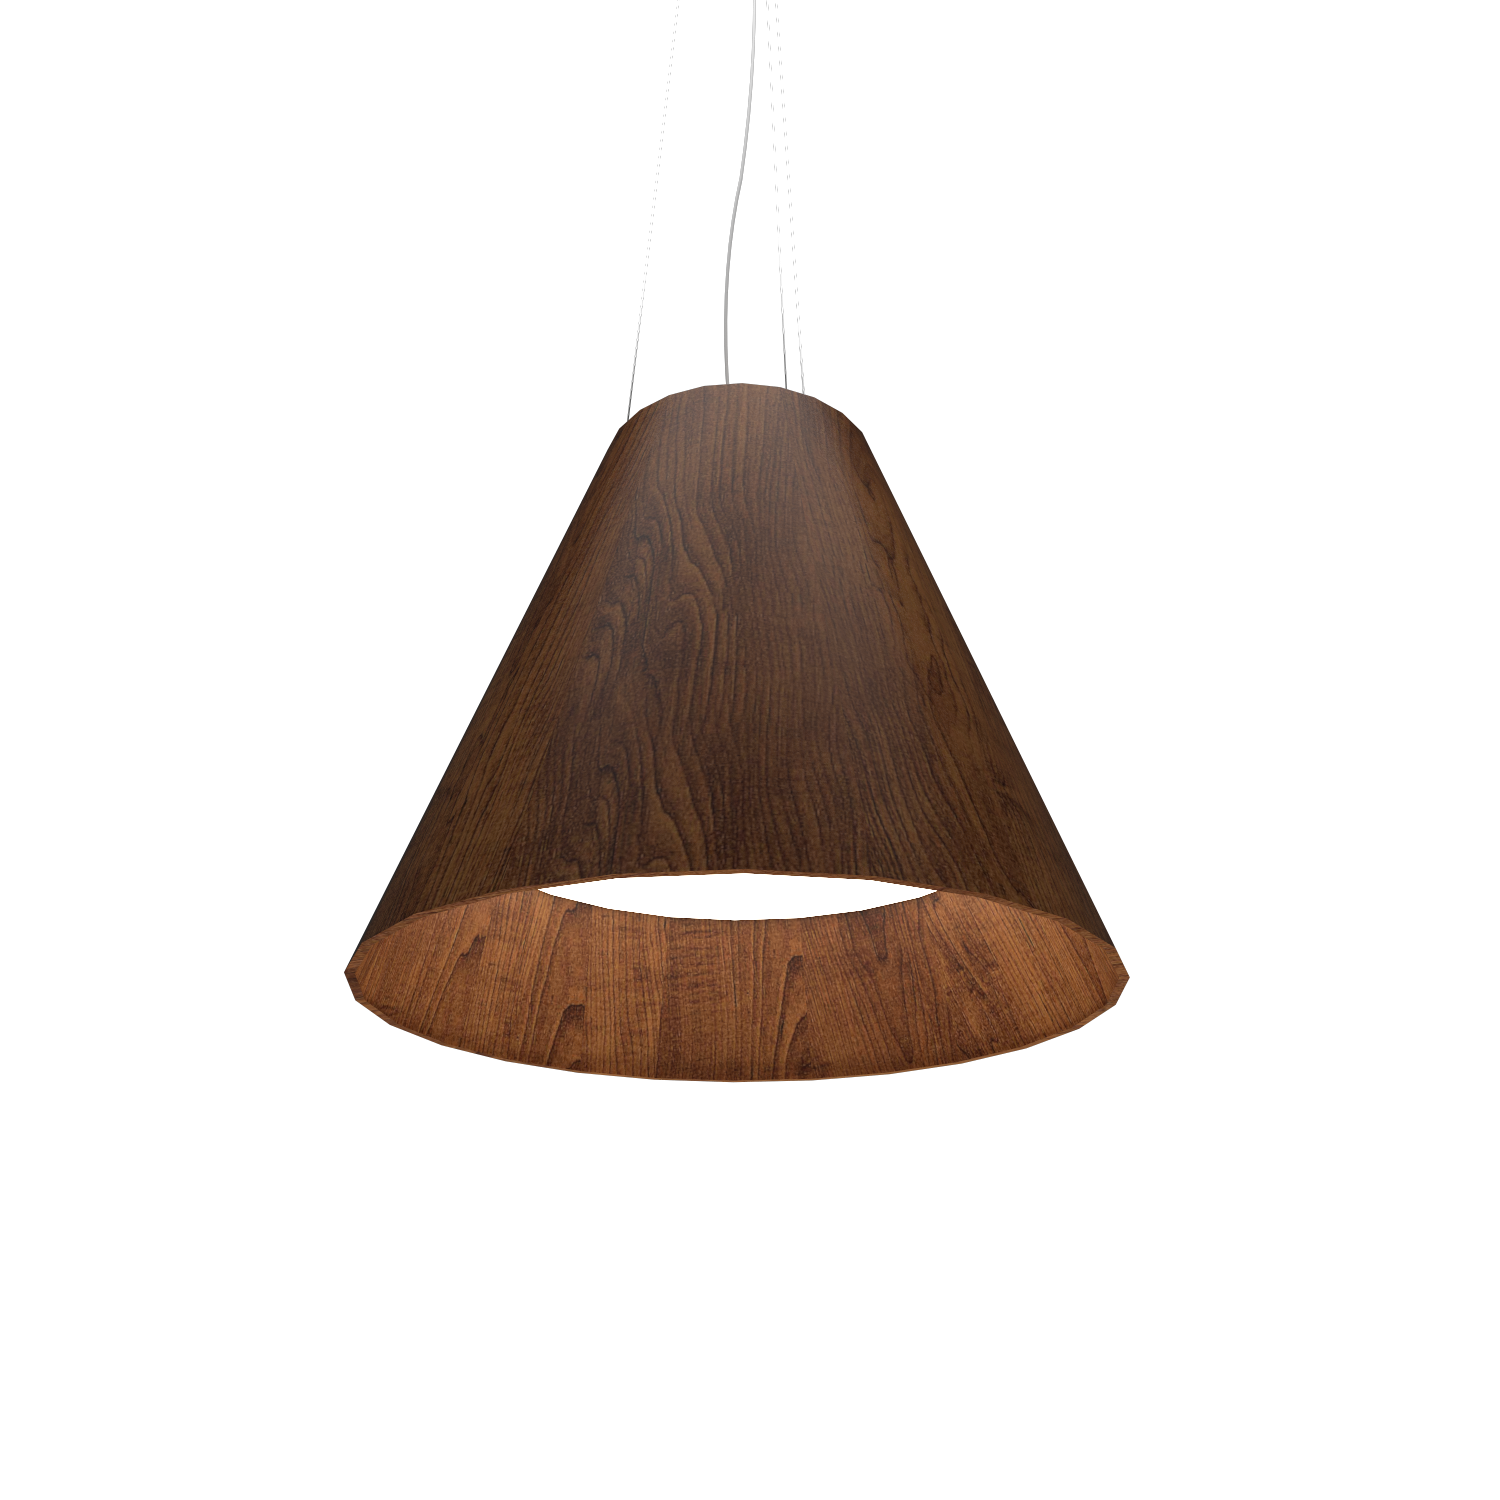 Pendant Lamp Accord Cônico 295 - Cônica Line Accord Lighting | 06. Imbuia